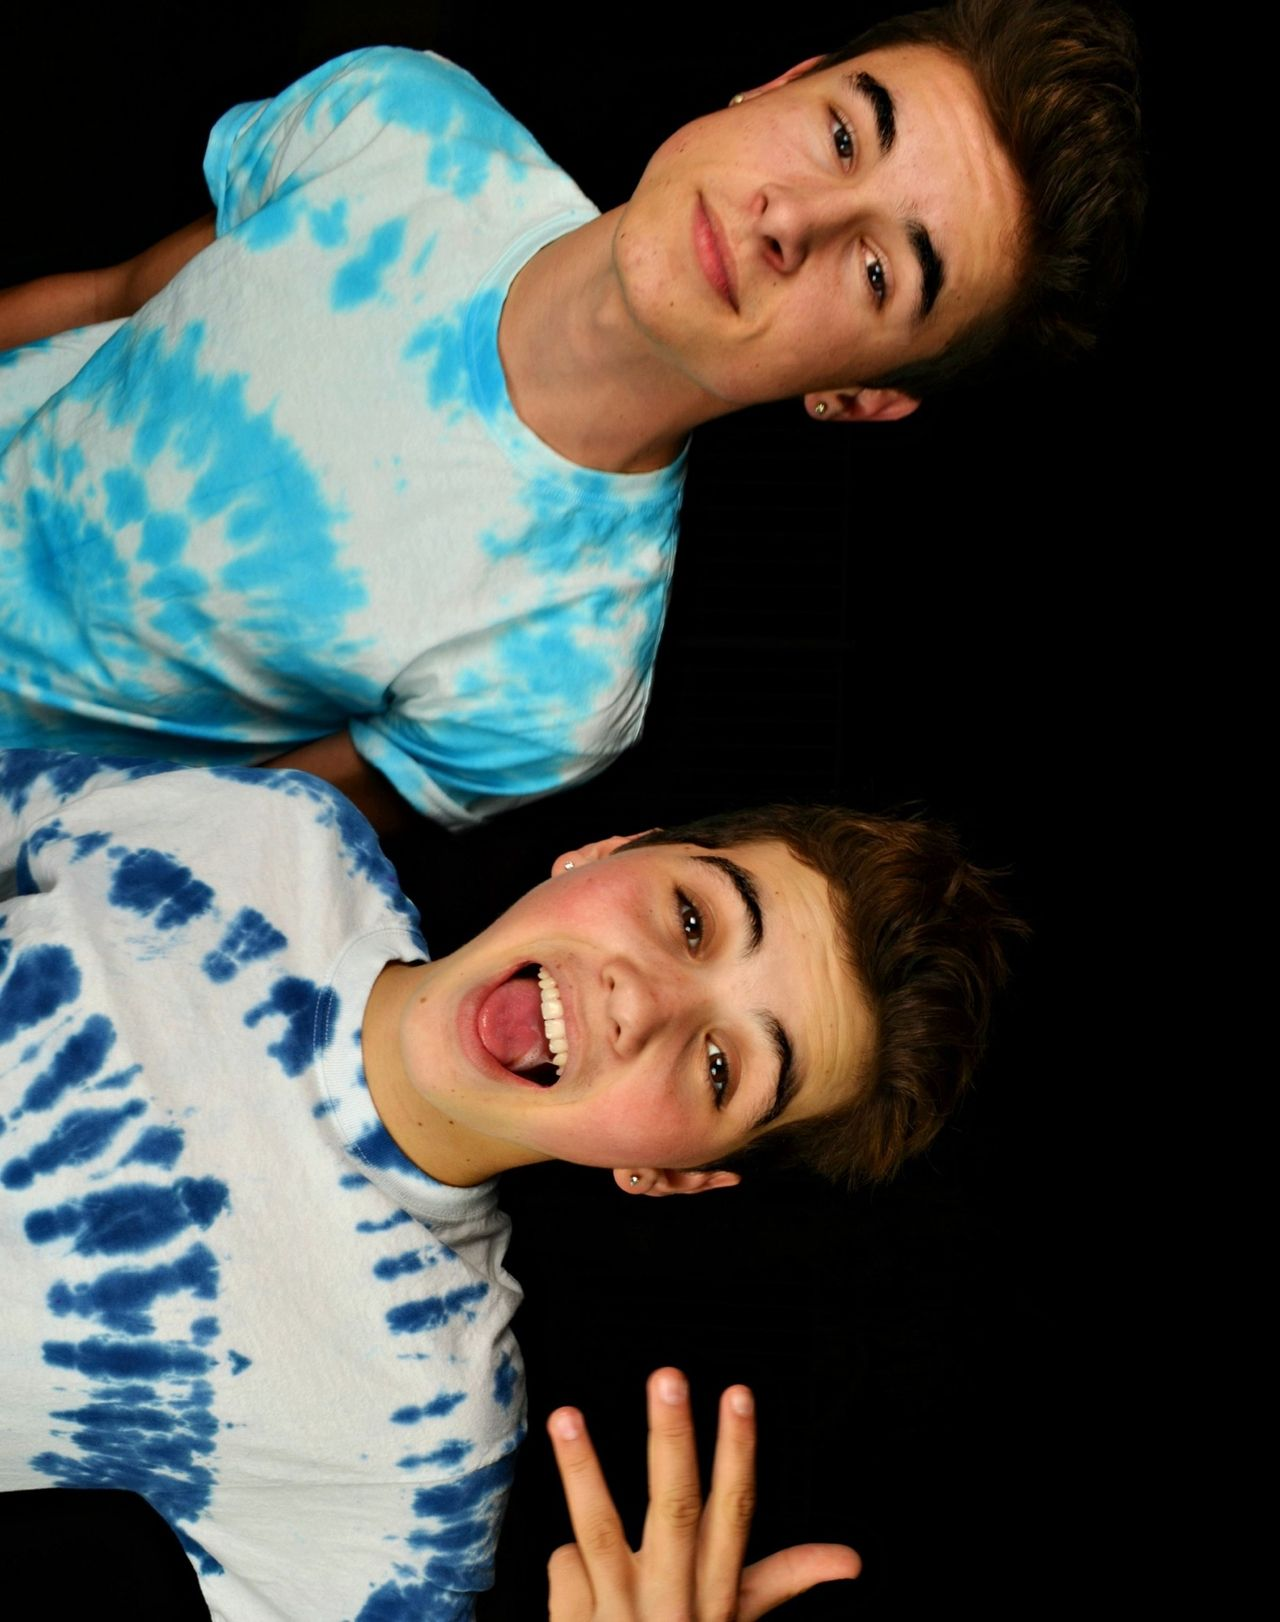 Sam Pottorff and Kian Lawley, dressed up for the Trouble music video